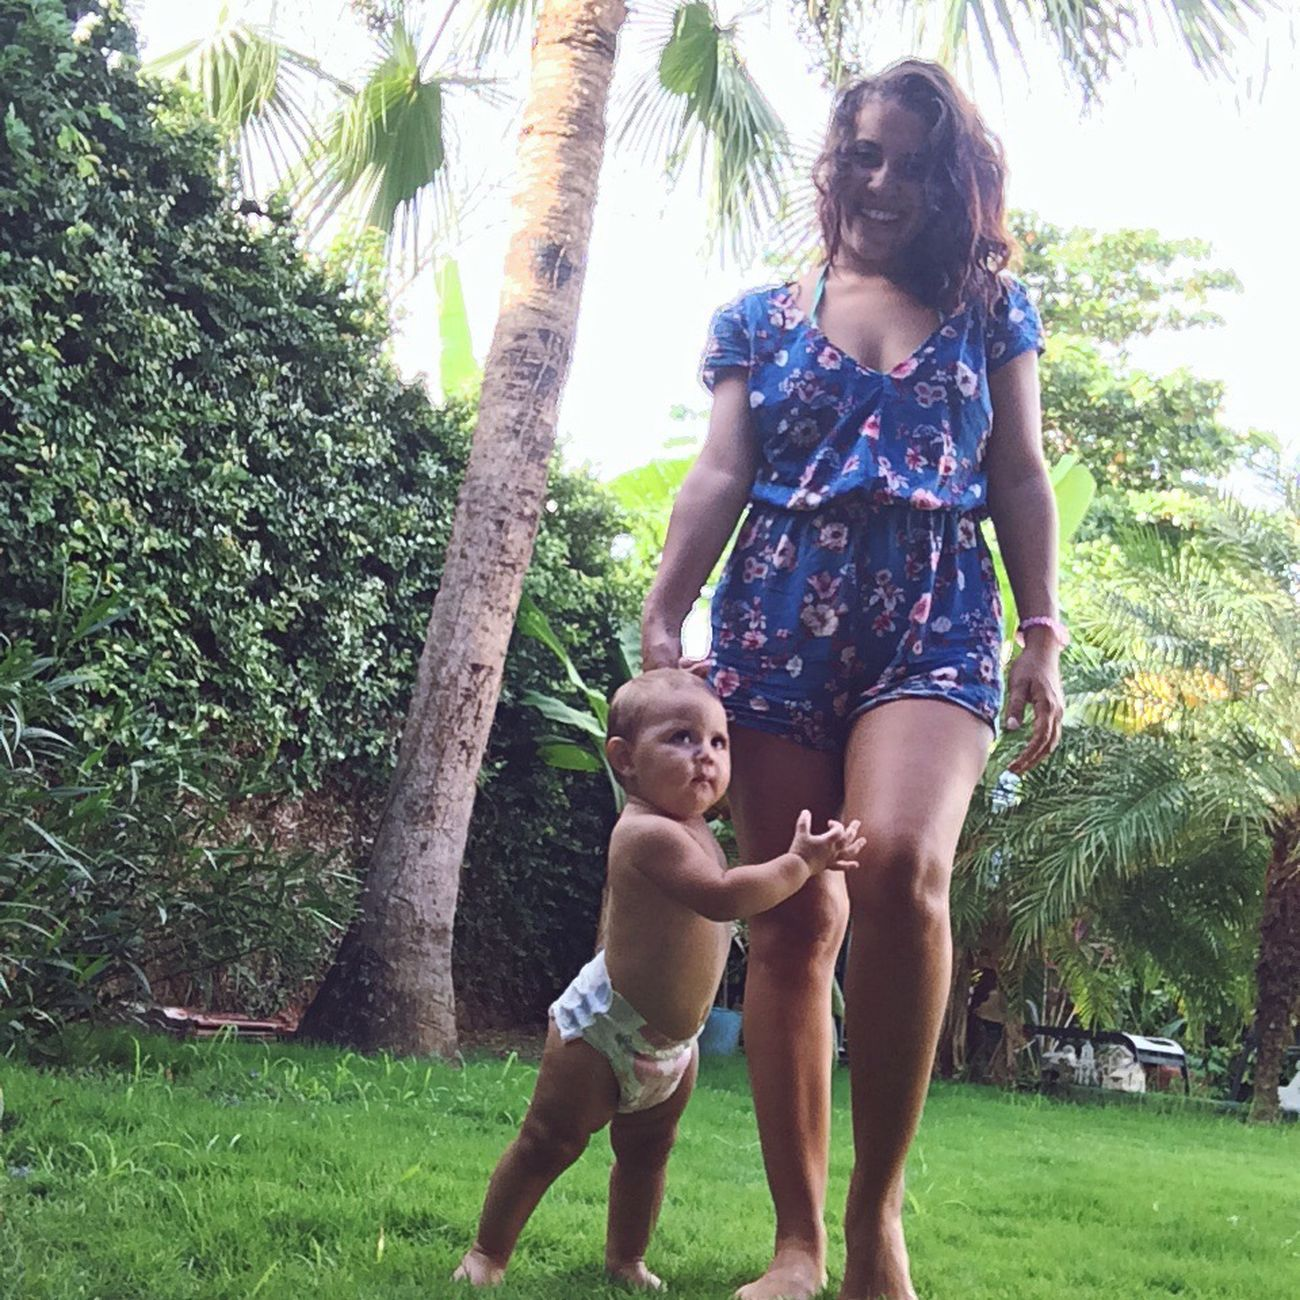 Momanddaughter Forever Mybaby GettingSoBig Myoneandonly Truelove Happiness Best Gift Wonderful Daguhters MotherChildhood Grass Outdoors Family Playing